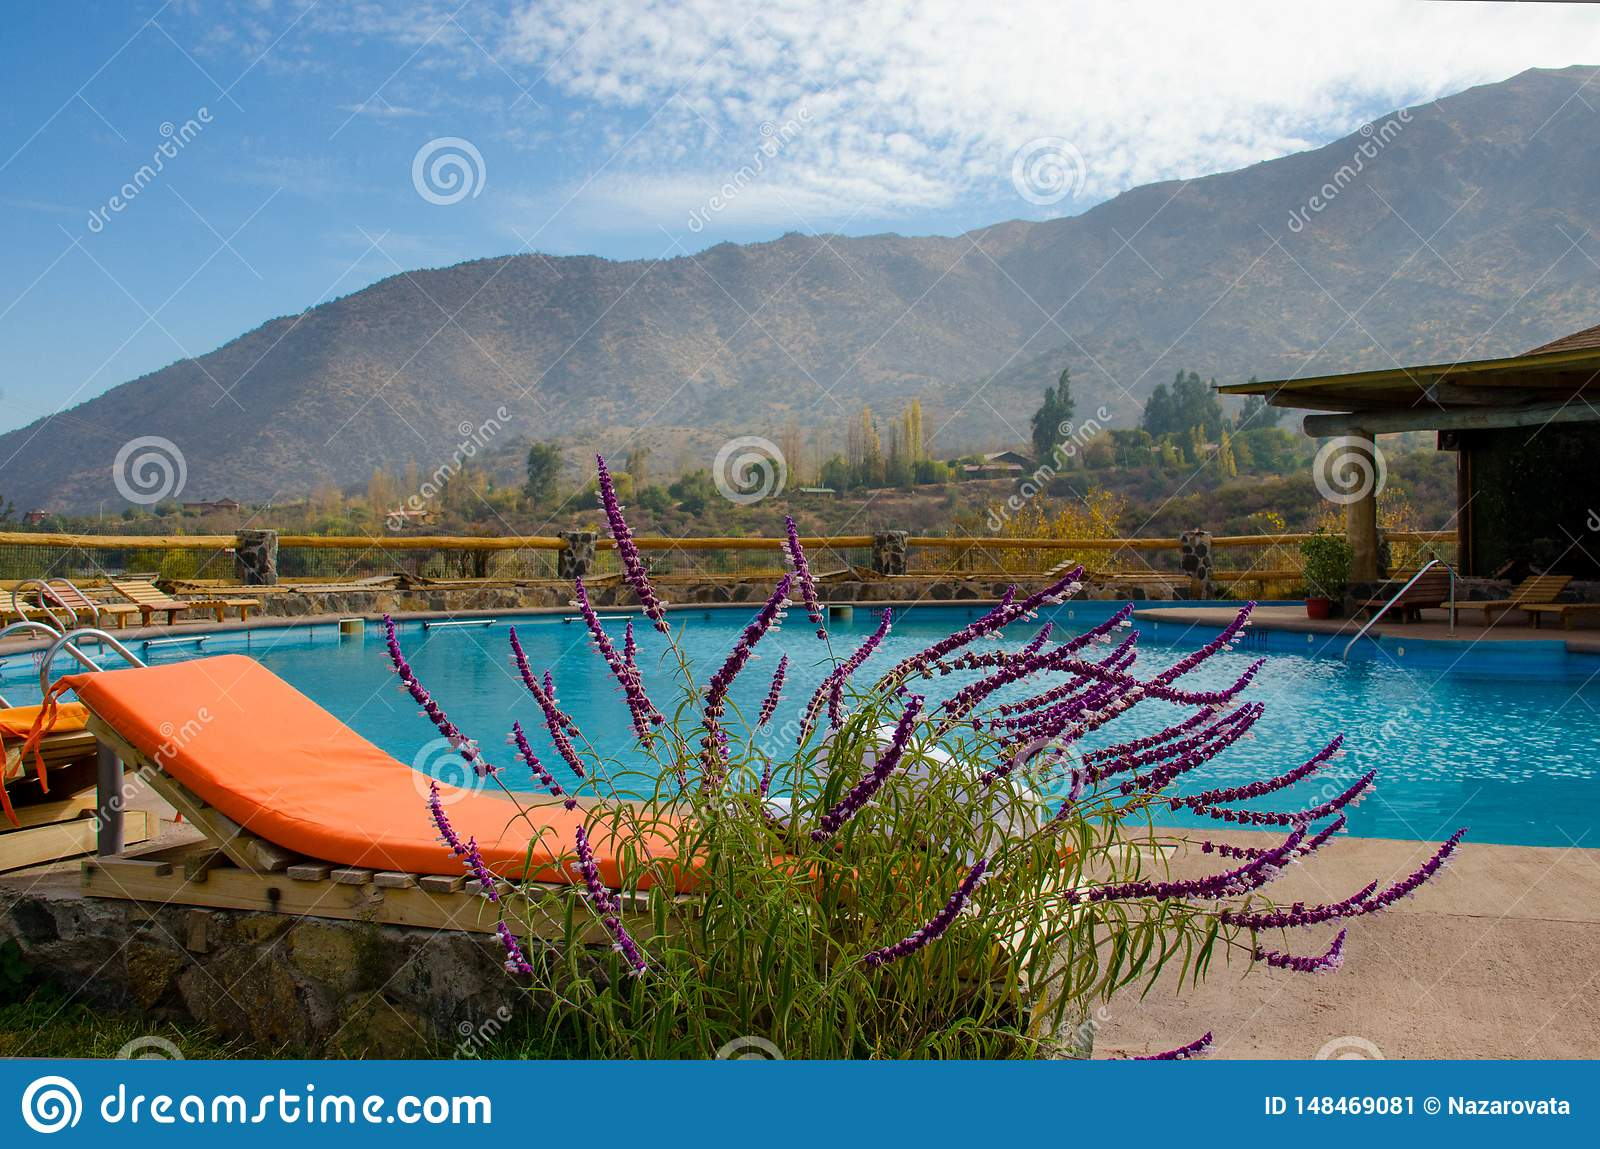 Colored loungers by the pool